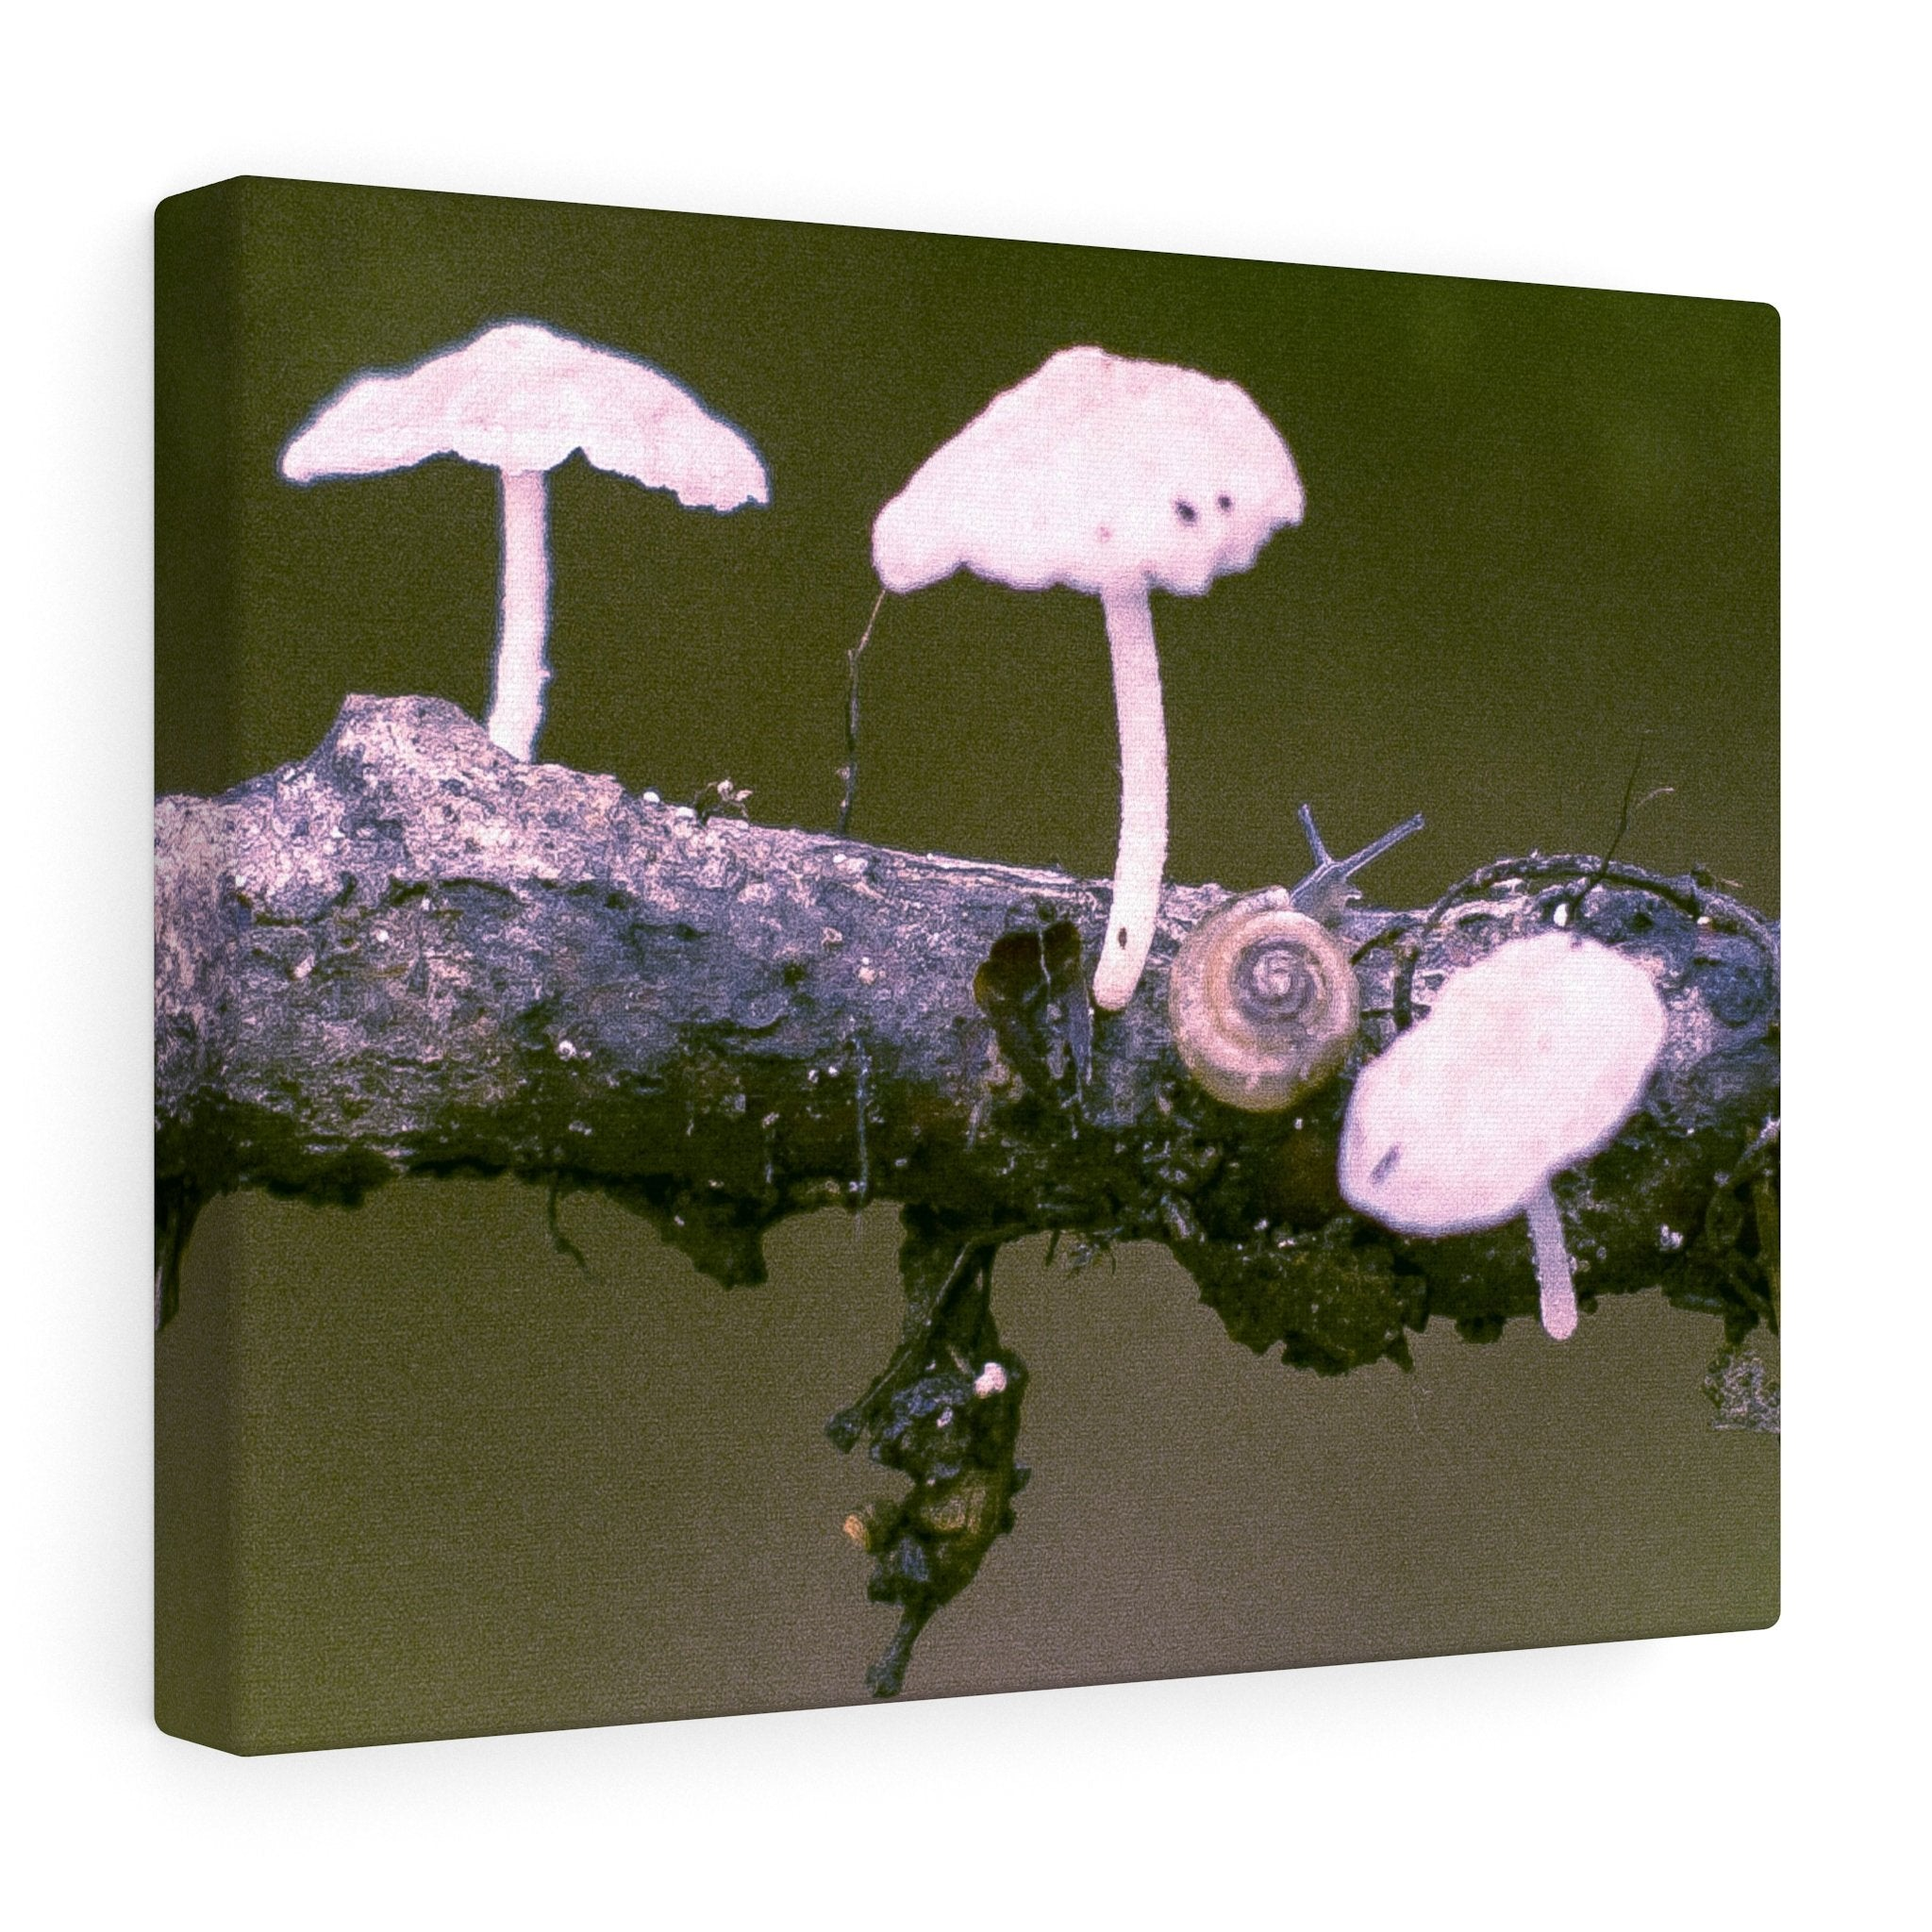 Snail on a Log Stretched canvas 14″ × 11″ / Stretched Canvas (1.5